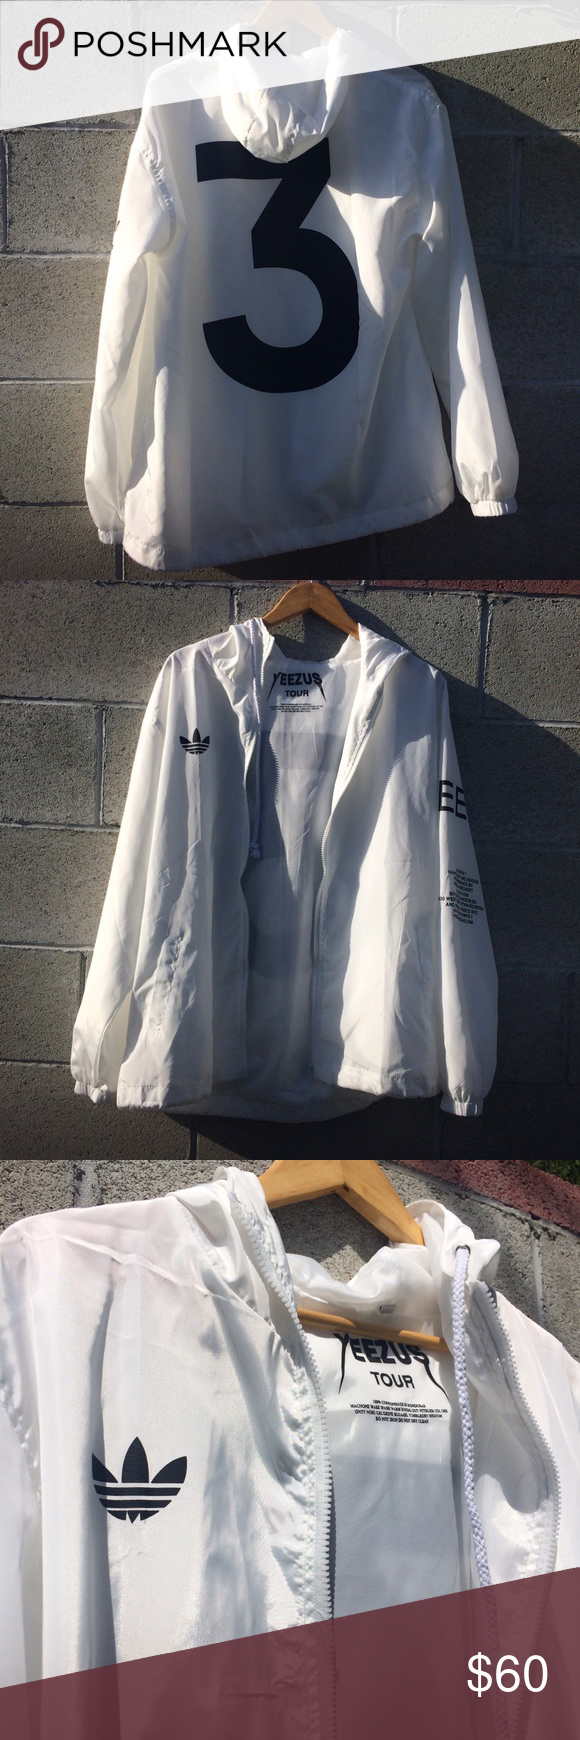 adidas nmd primeknit japan white adidas yeezy season 1 windbreaker